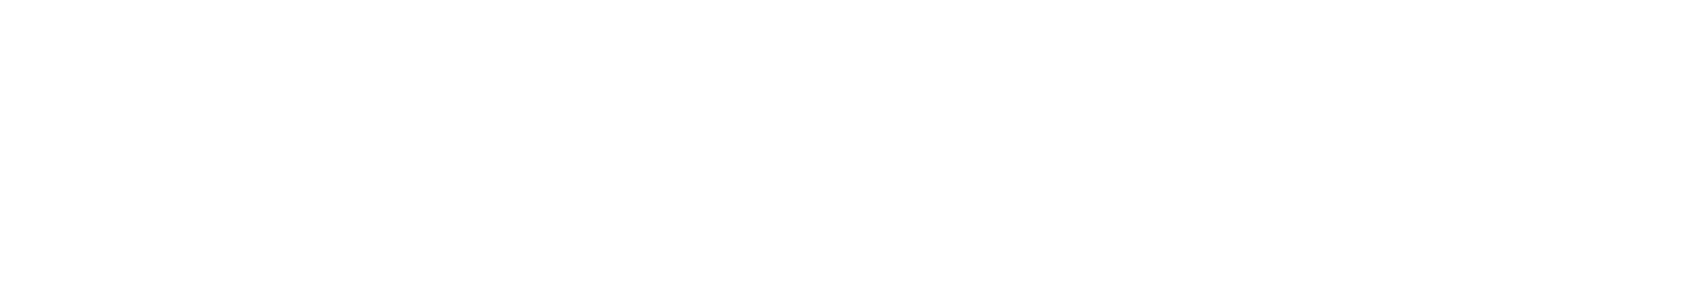 Meyer Brothers & Sons